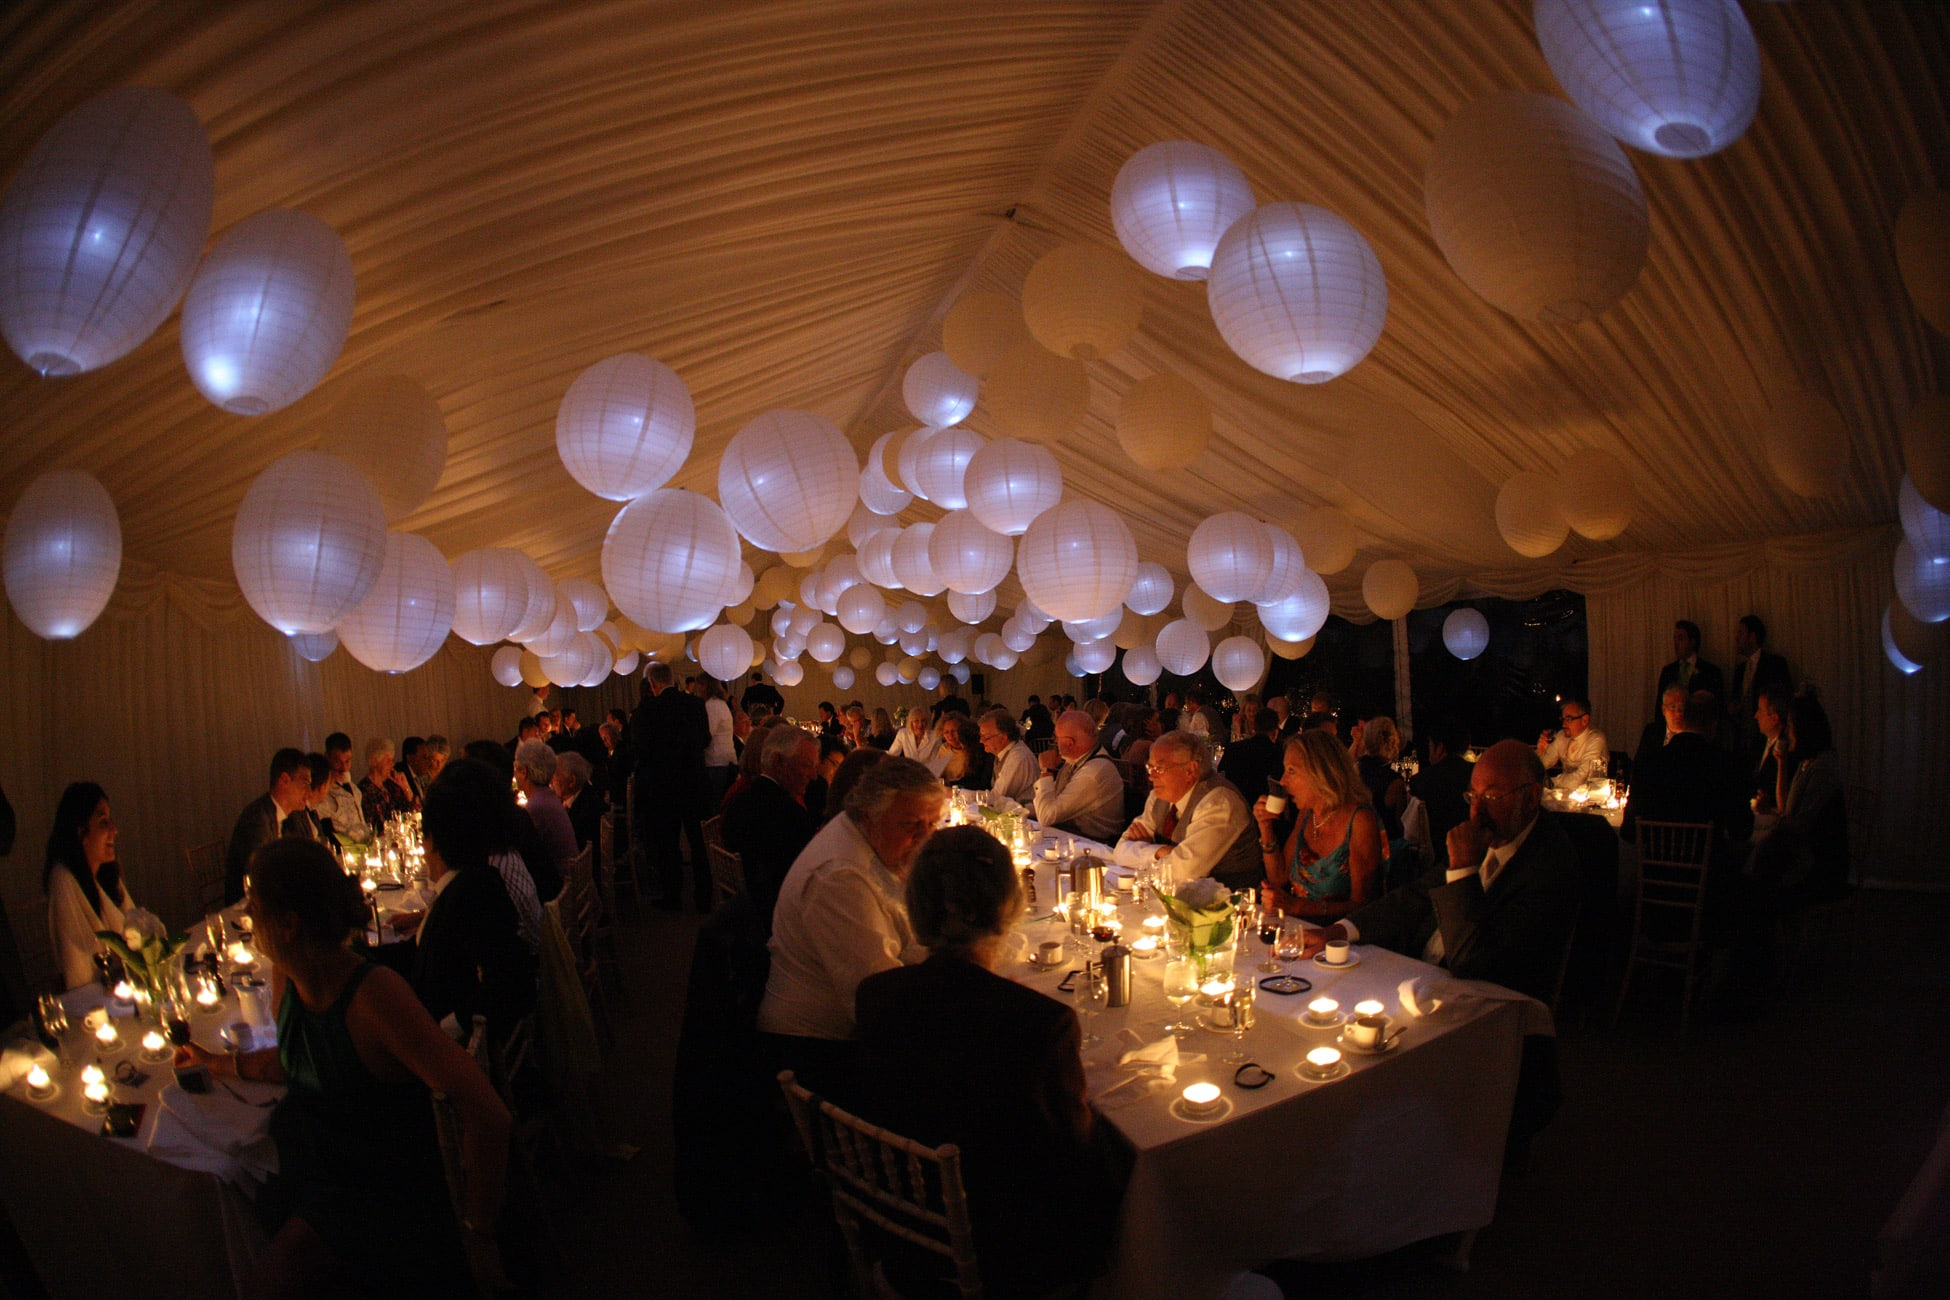 lighting-at-marquee-wedding